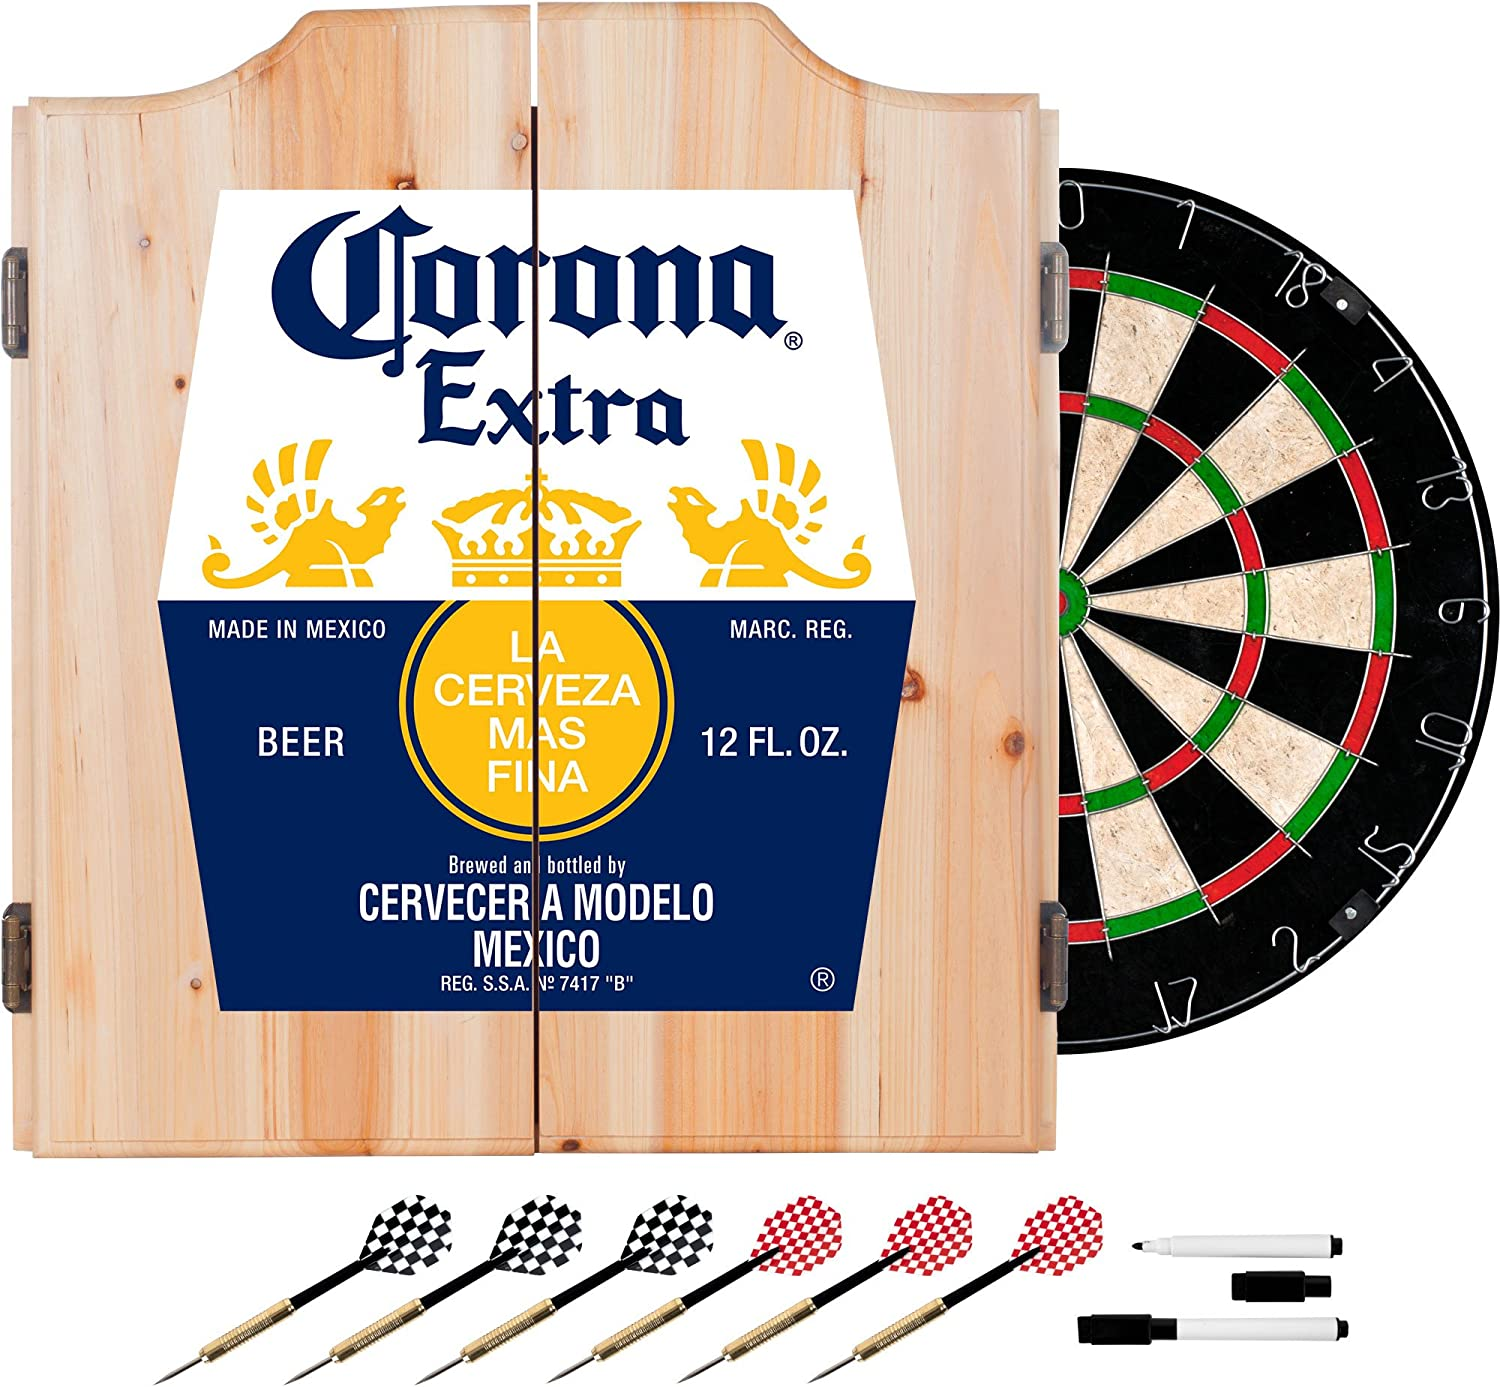 Cgoldna Extra Dart Board Set with Cabinet  Label  by Cgoldna